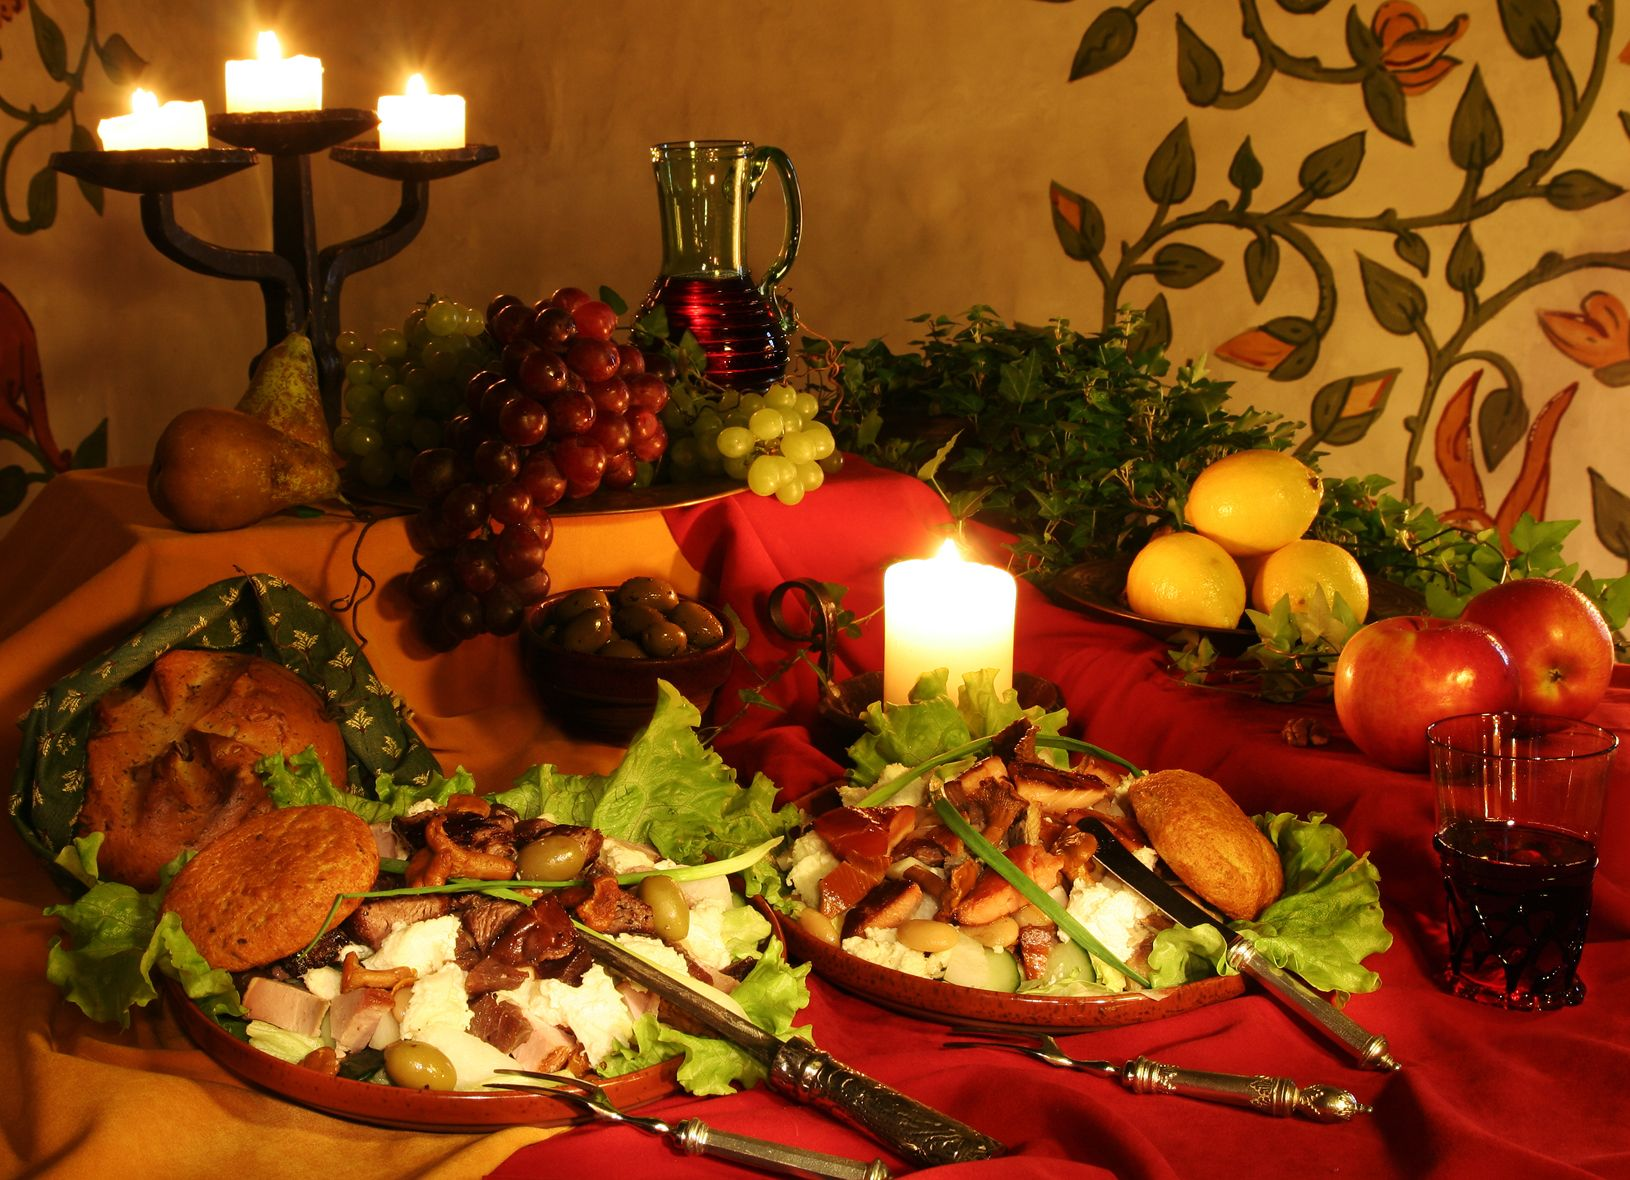 Feasting table spread medieval wedding dream ideas